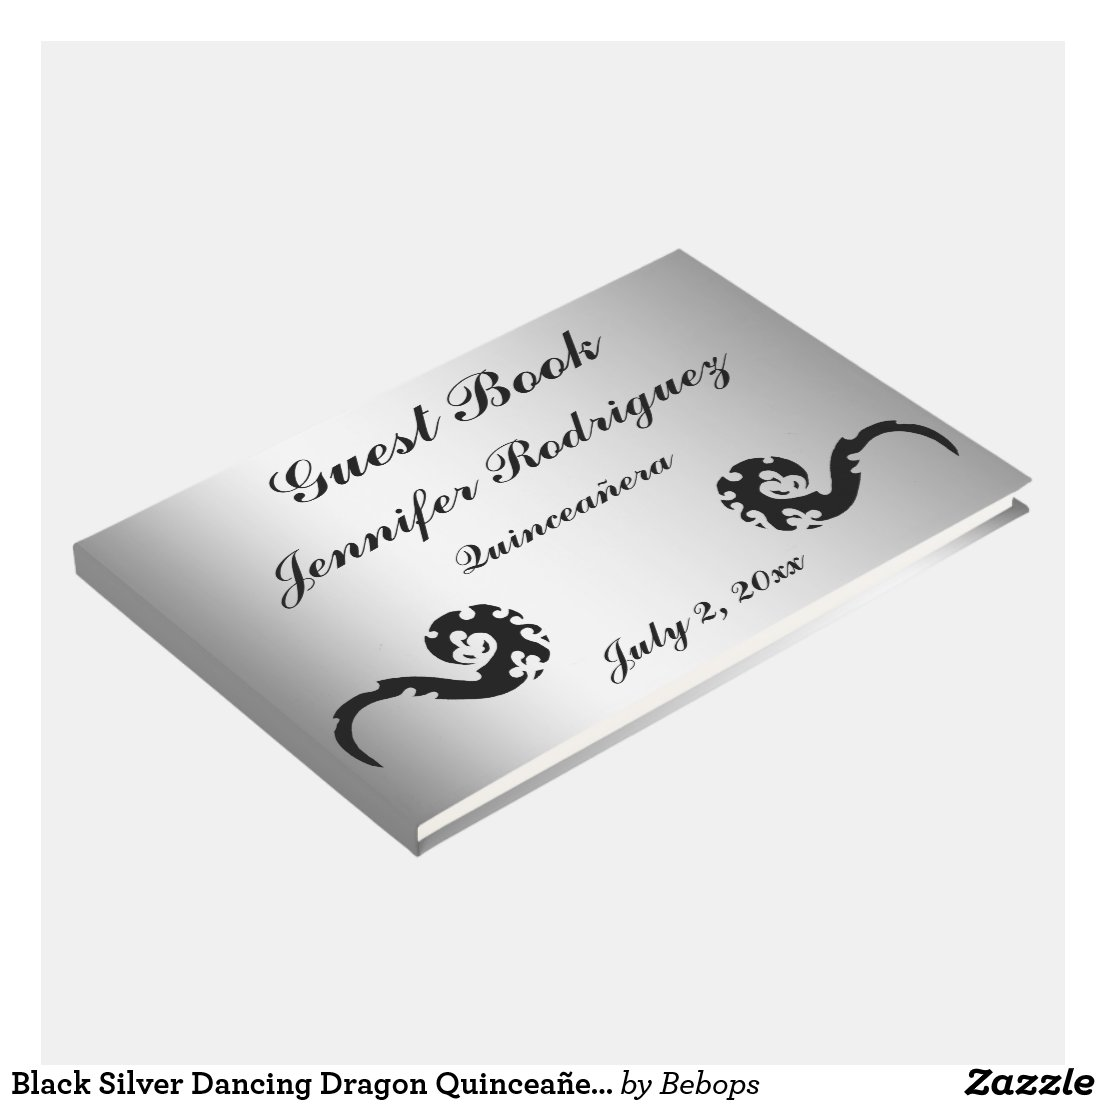 Black Silver Dancing Dragon Quinceañera Guest Book